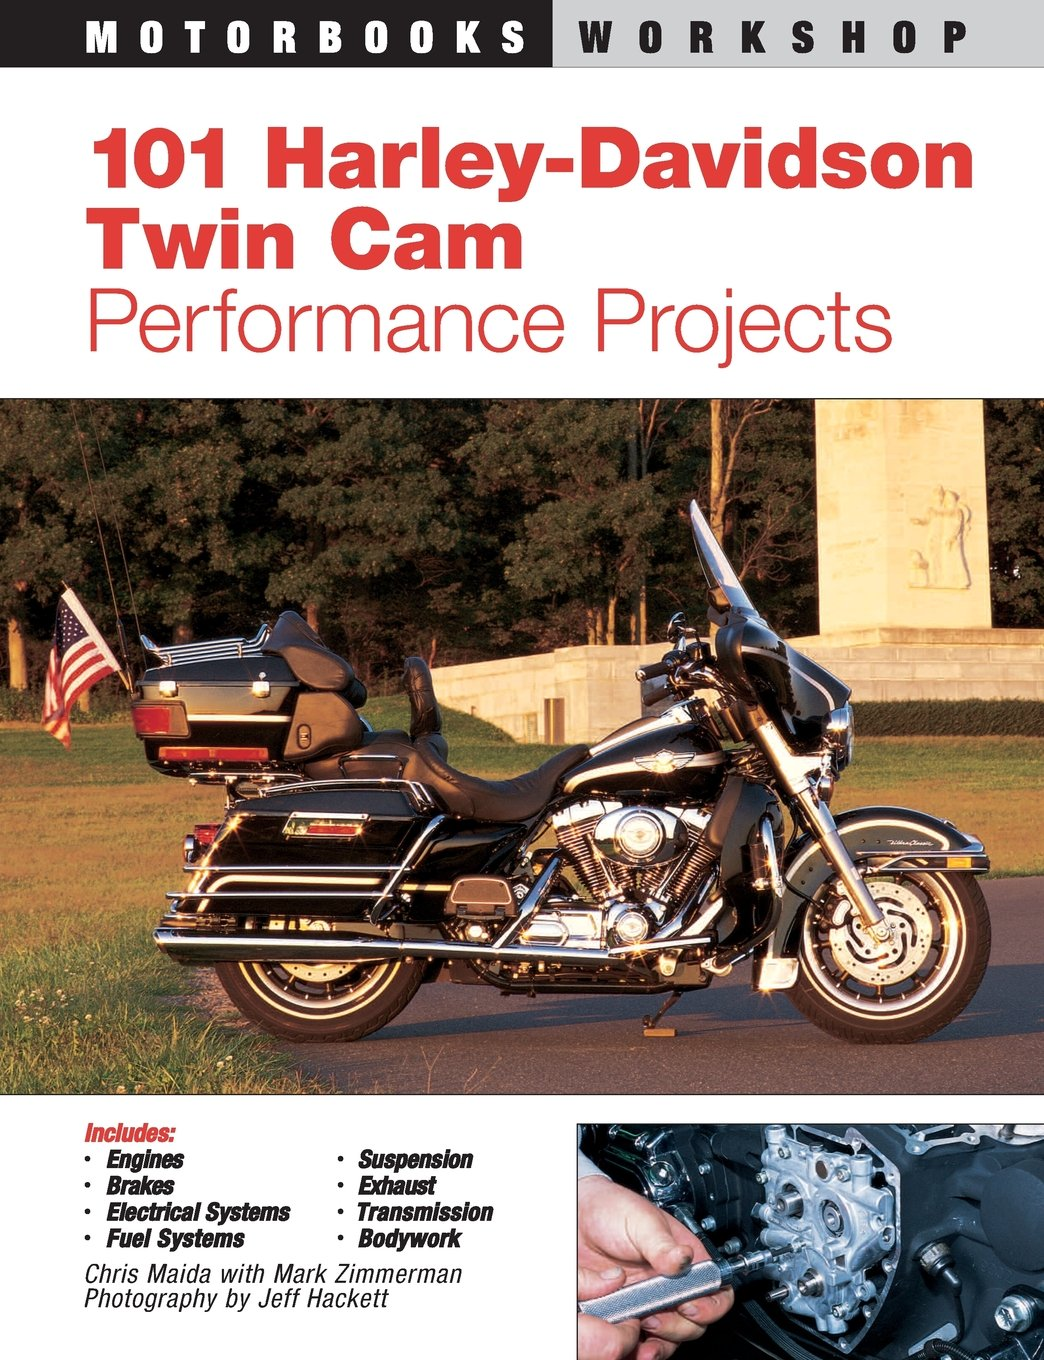 101 Harley-Davidson Twin Cam Performance Projects (Motorbooks Workshop):  Mark Zimmerman: 9780760316399: Amazon.com: Books